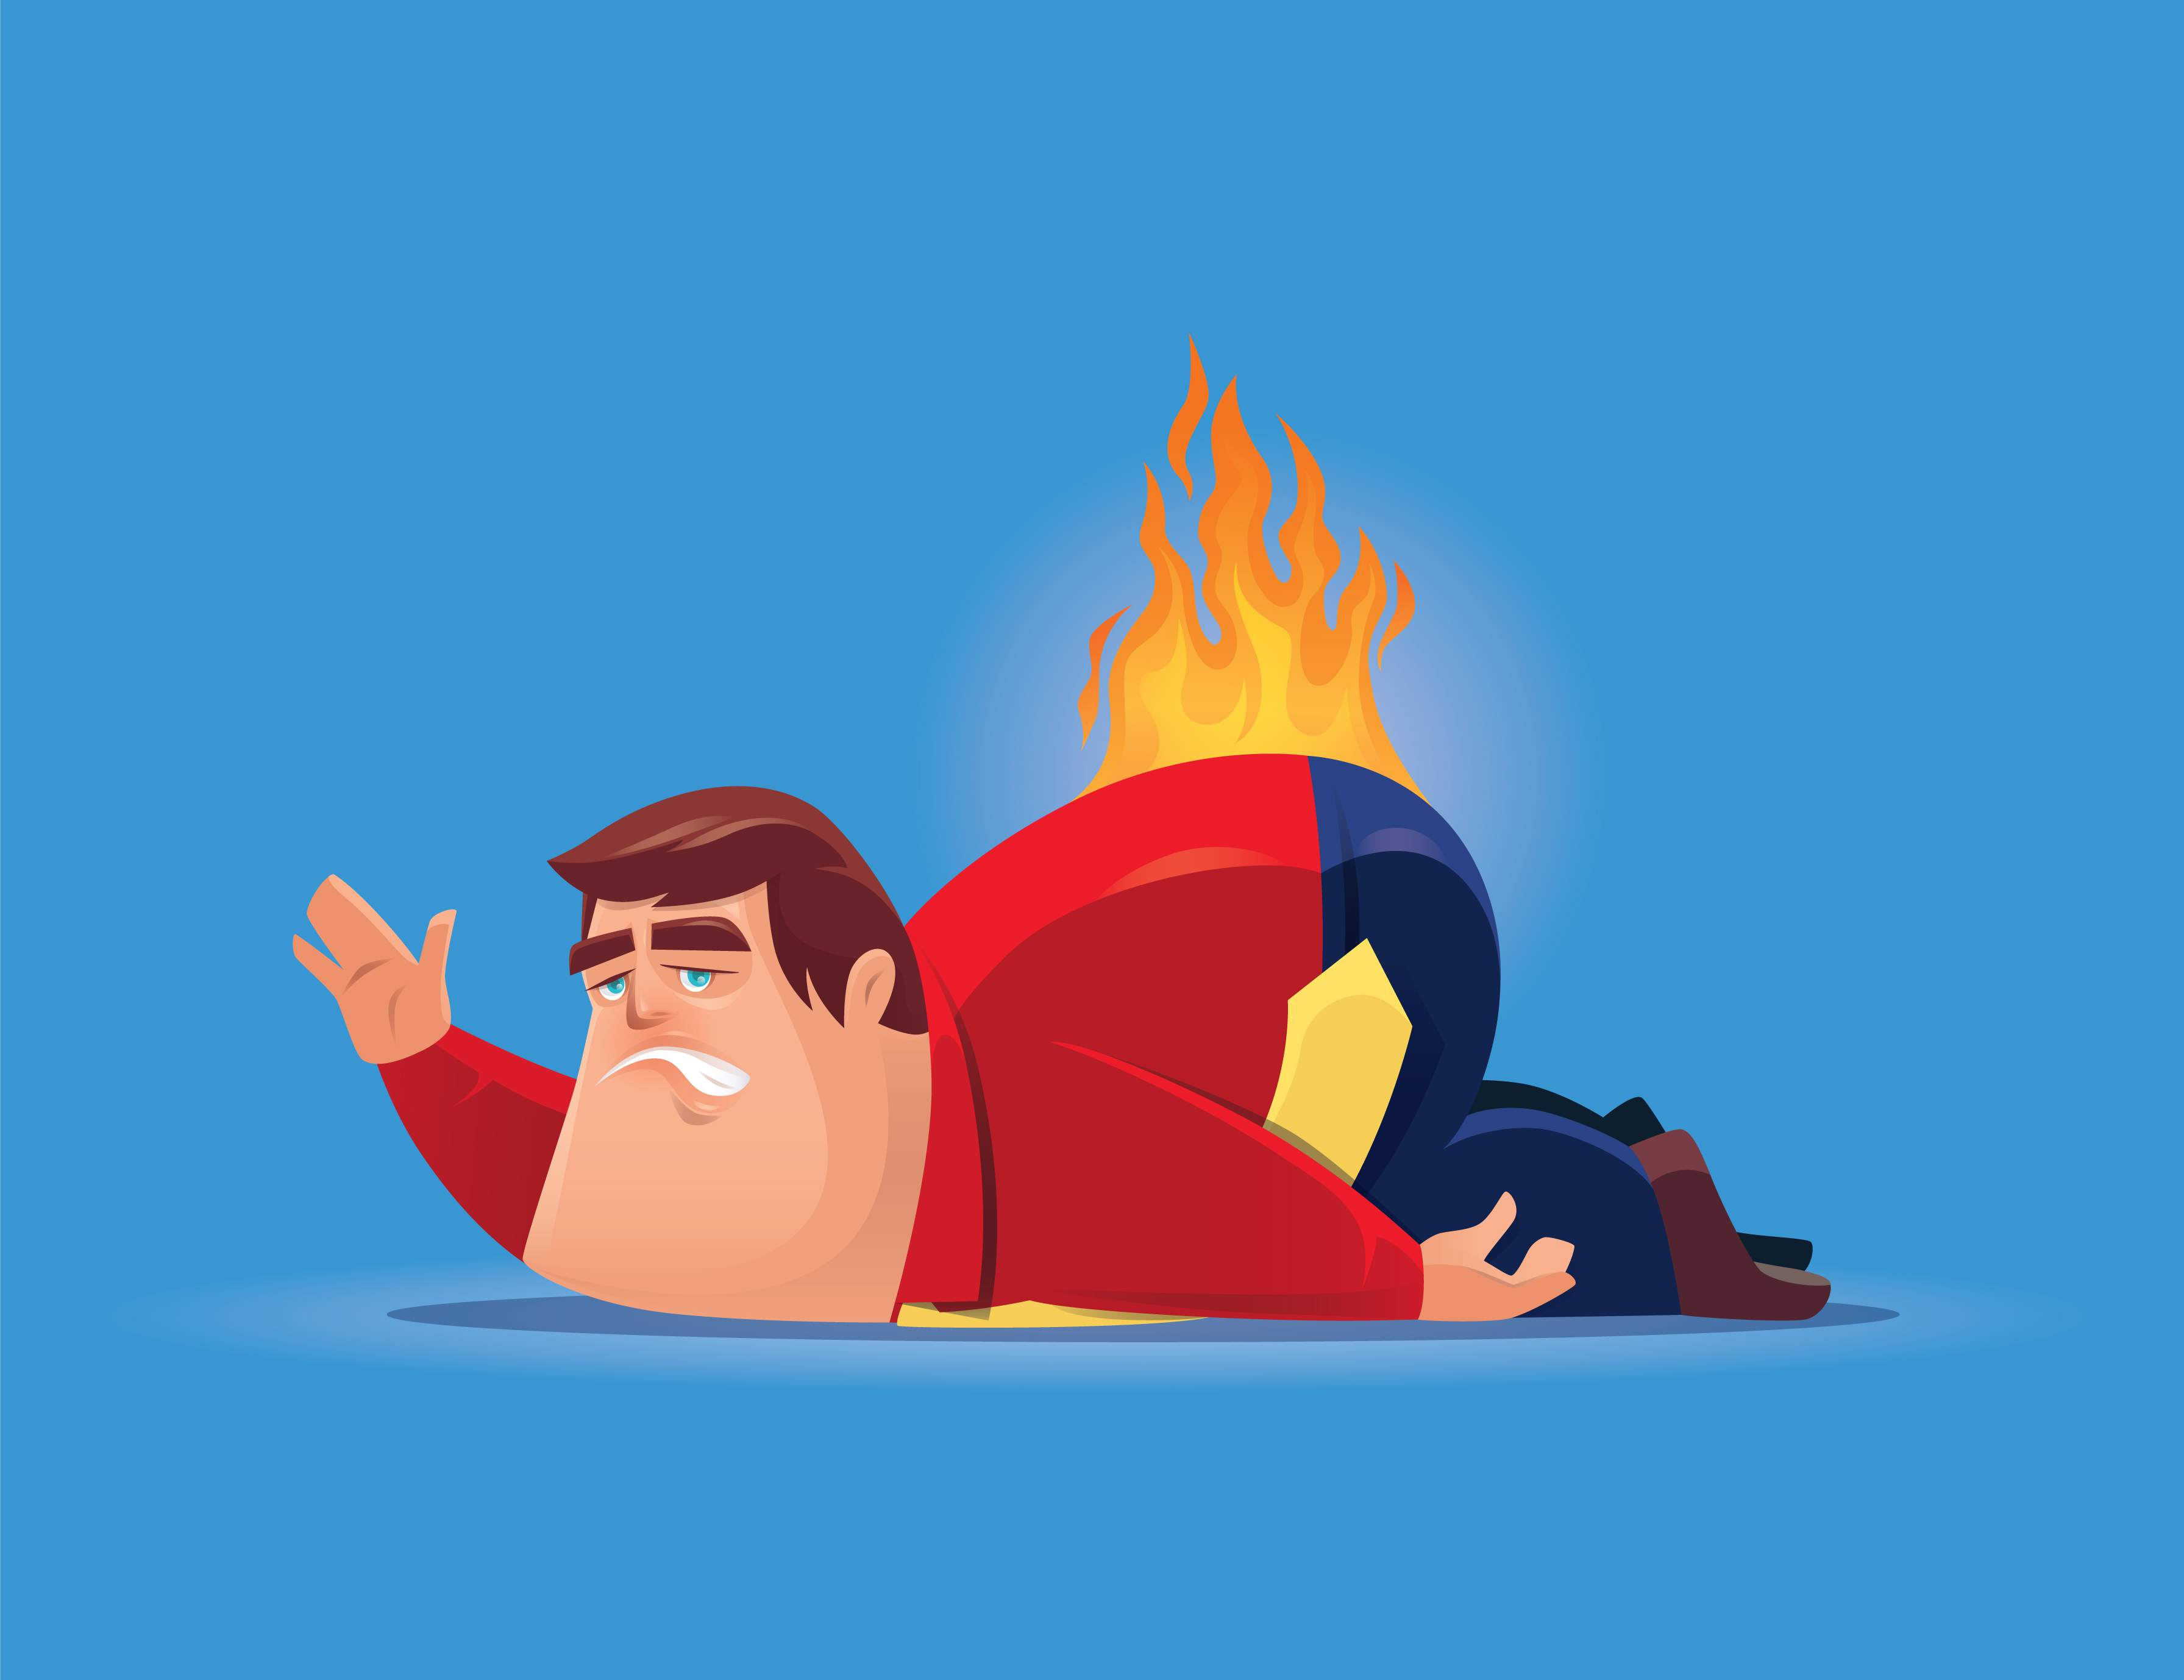 Illustration of man with back on fire waving with discontent